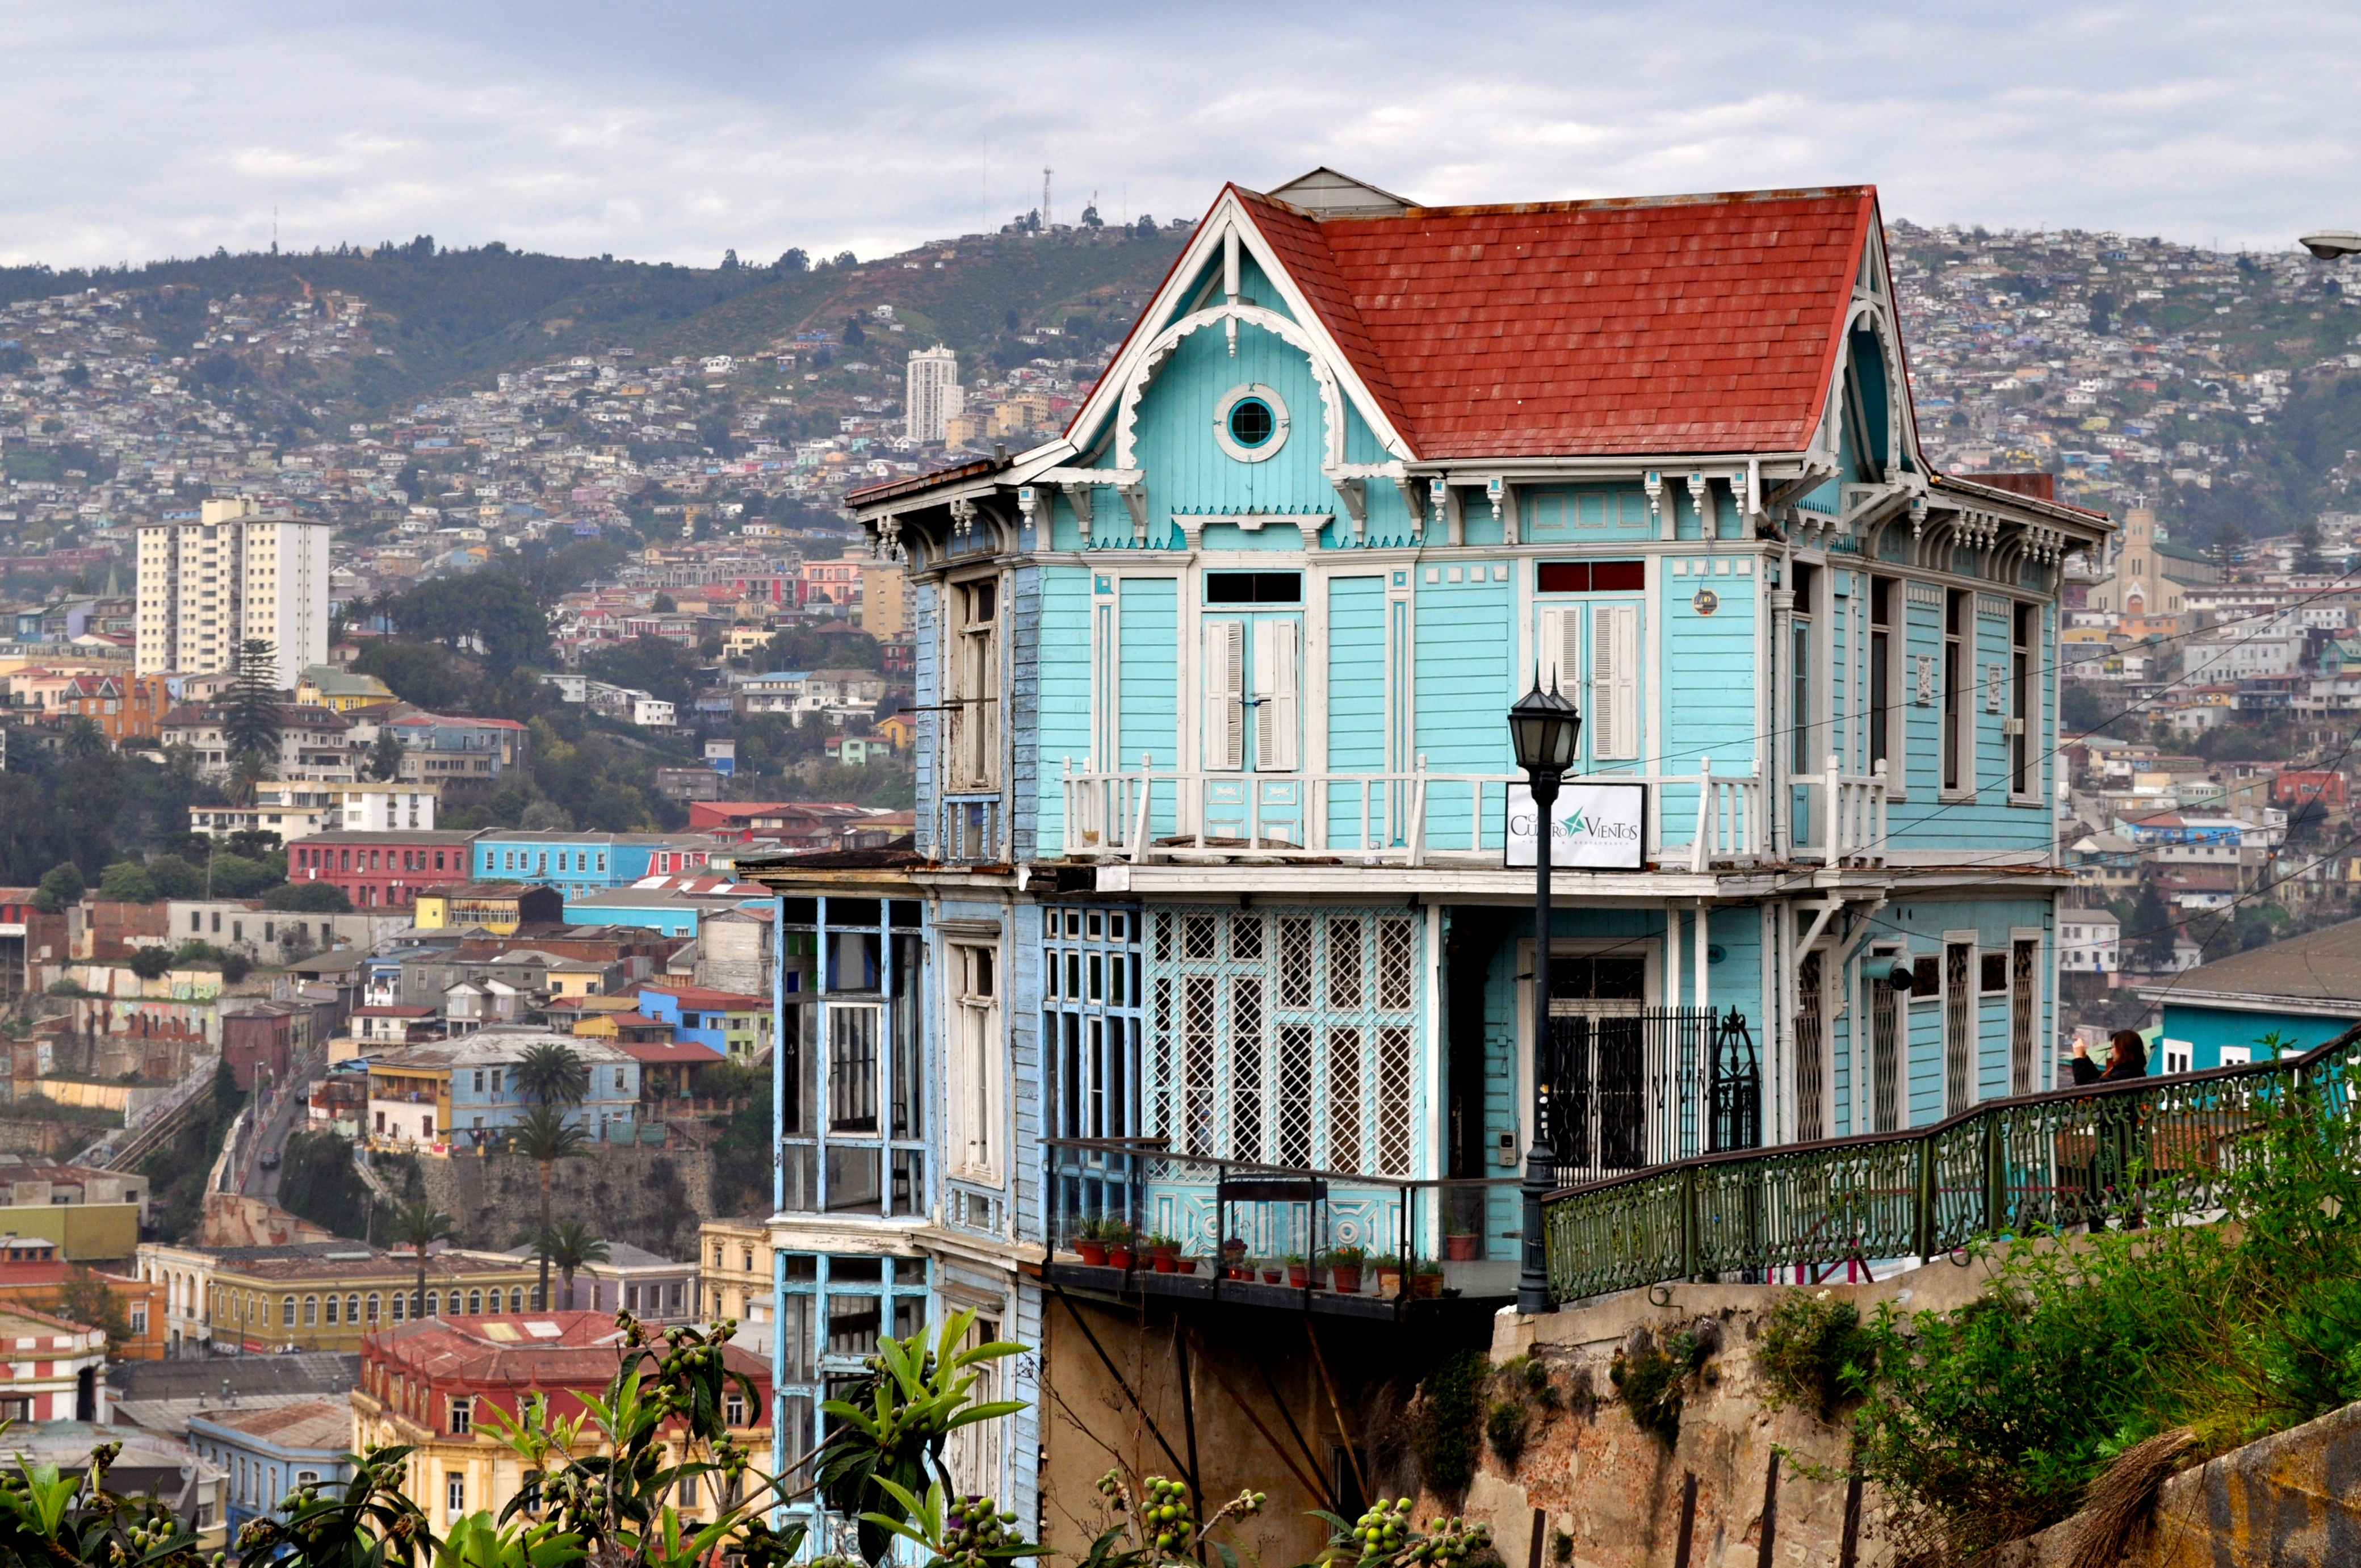 4 Amazing Places To Visit In Valparaisovina Del Mar Chile on Summer Word Search 2